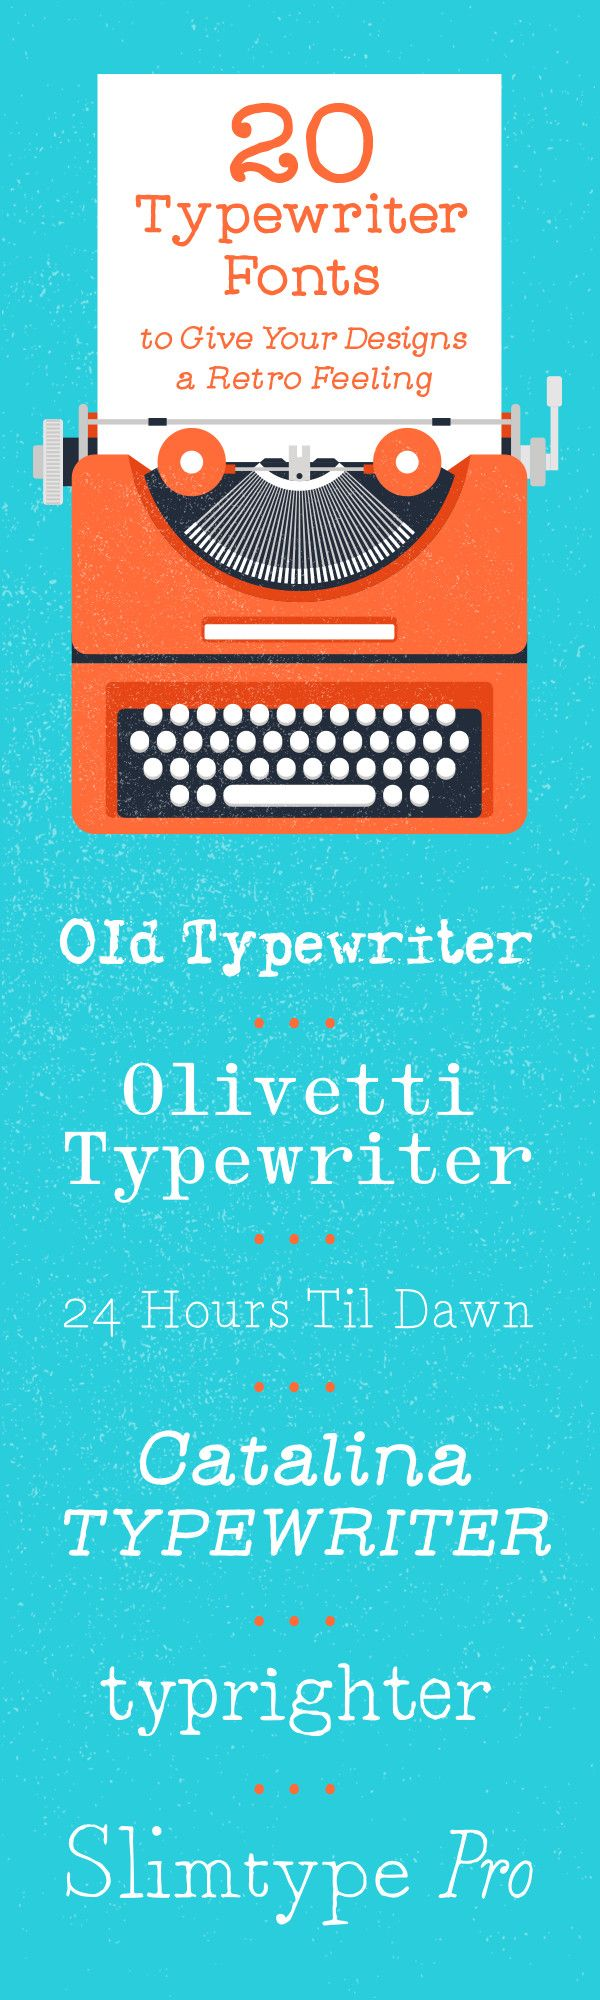 On the Creative Market Blog - 20 Typewriter Fonts to Give Your Designs a Retro Feeling